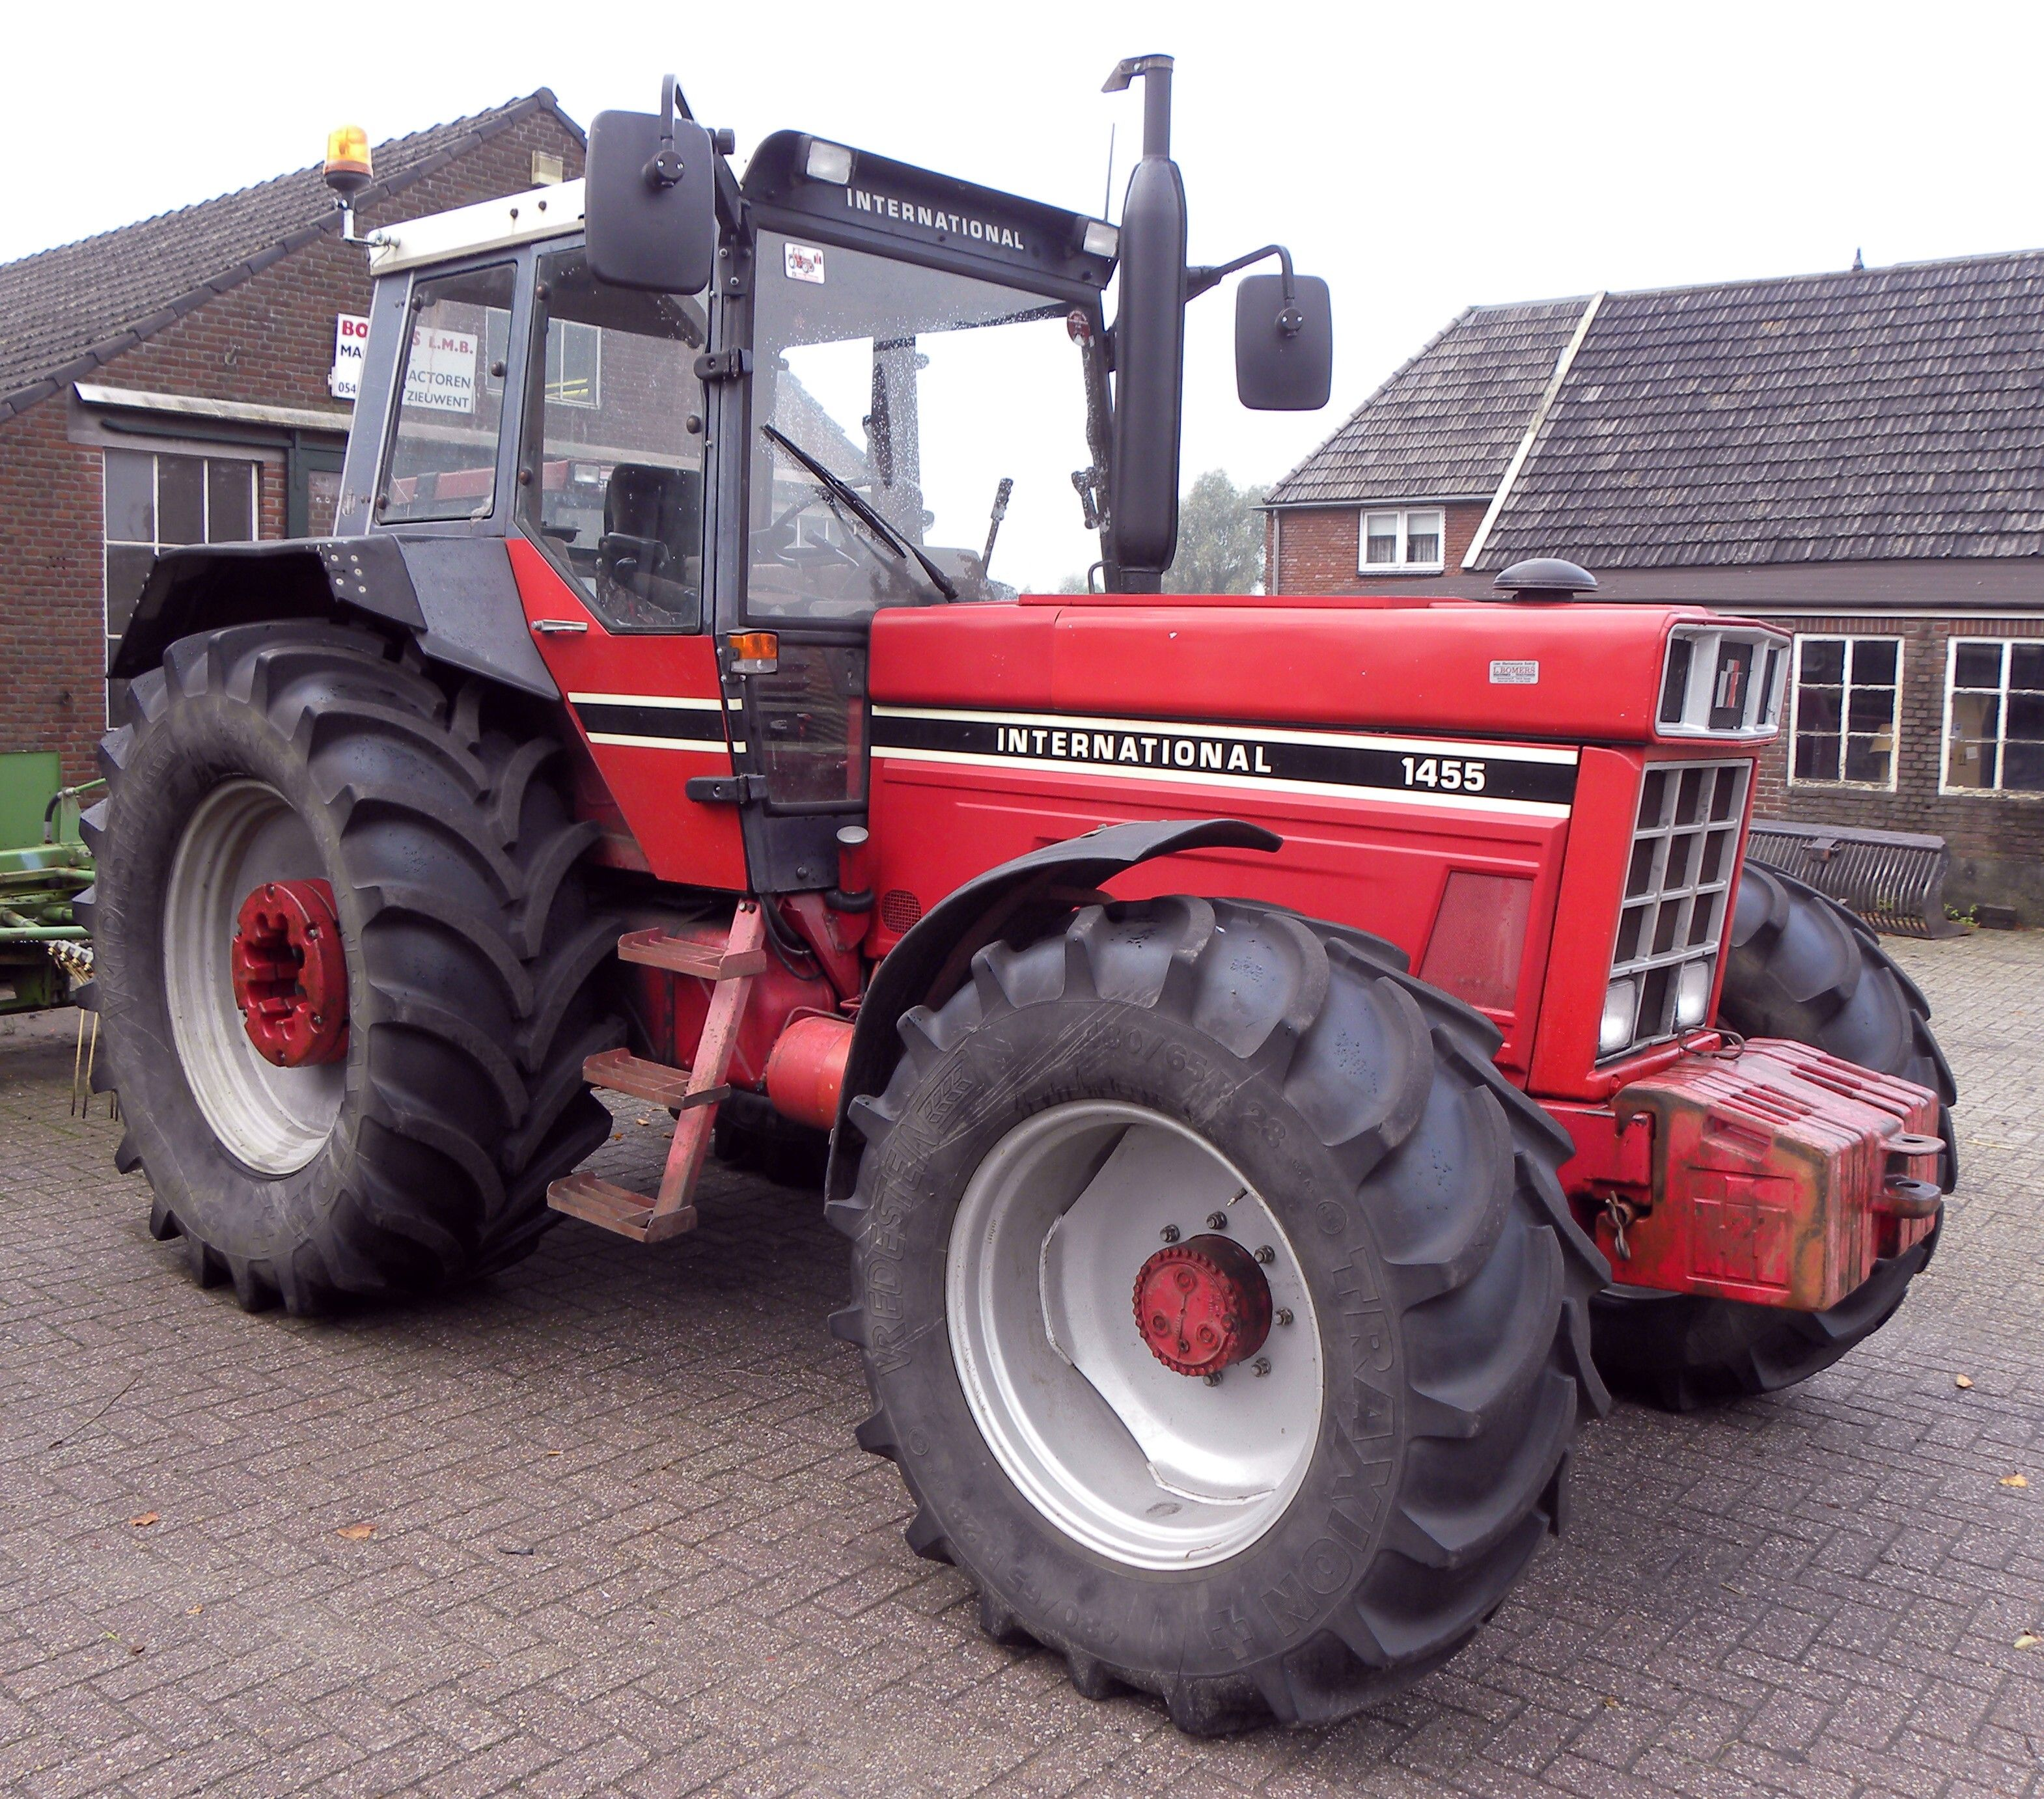 international 1455 Tractor - Google Search